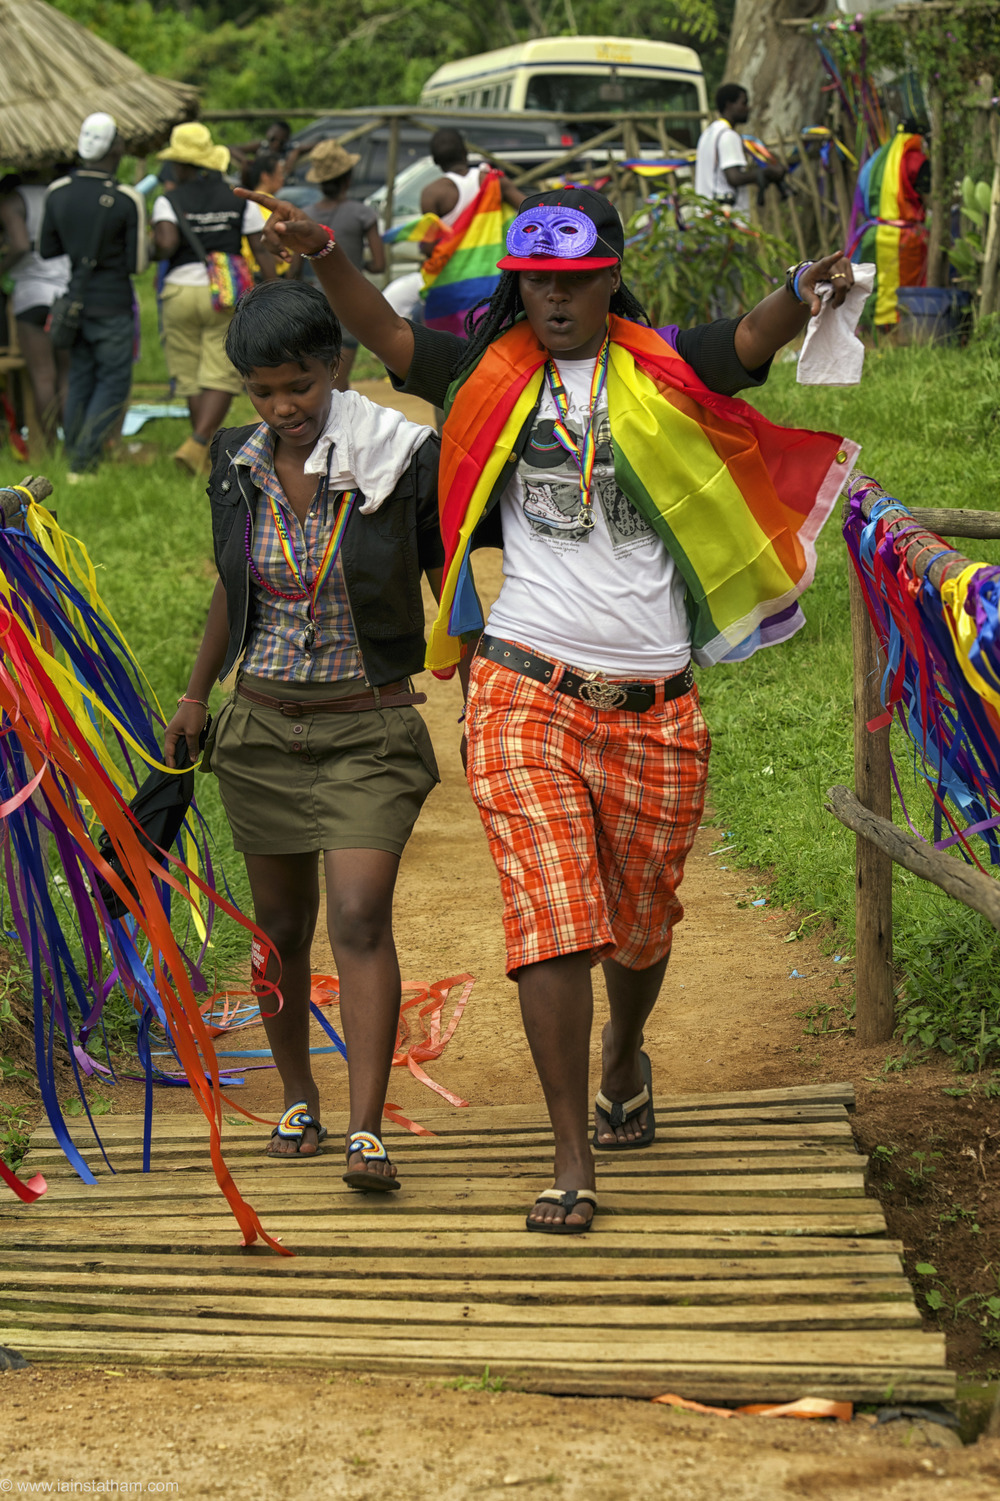 ug - entebbe - pride - colour-11.jpg